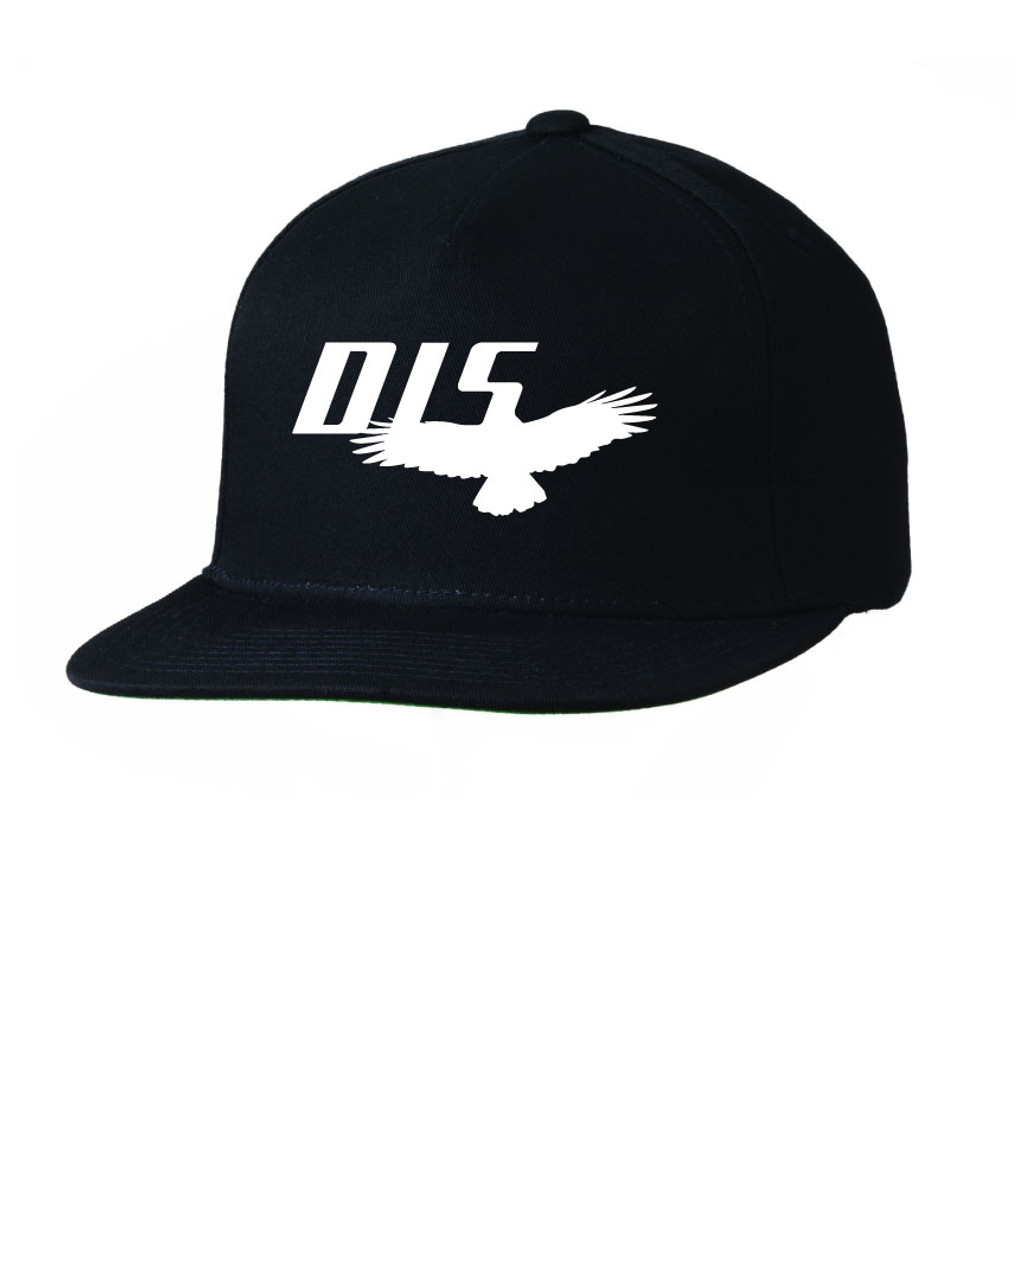 Quot Dis Quot Doing It Sober Logo Embroidered Black Five Panel